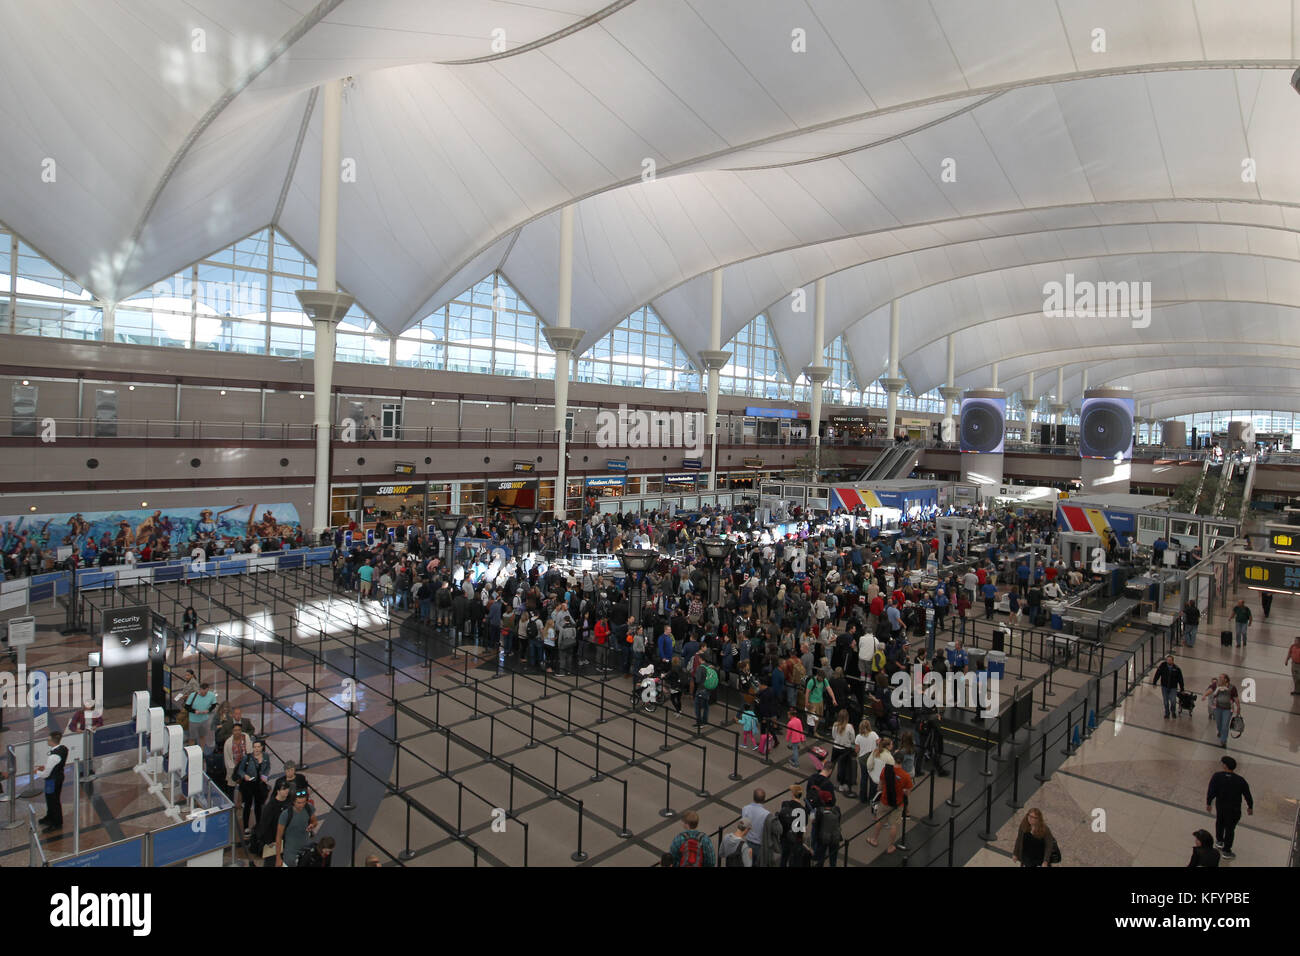 Security Checkpoint Of Denver International Airport Showing Roof That  Resembles The Rocky Mountains.   Stock